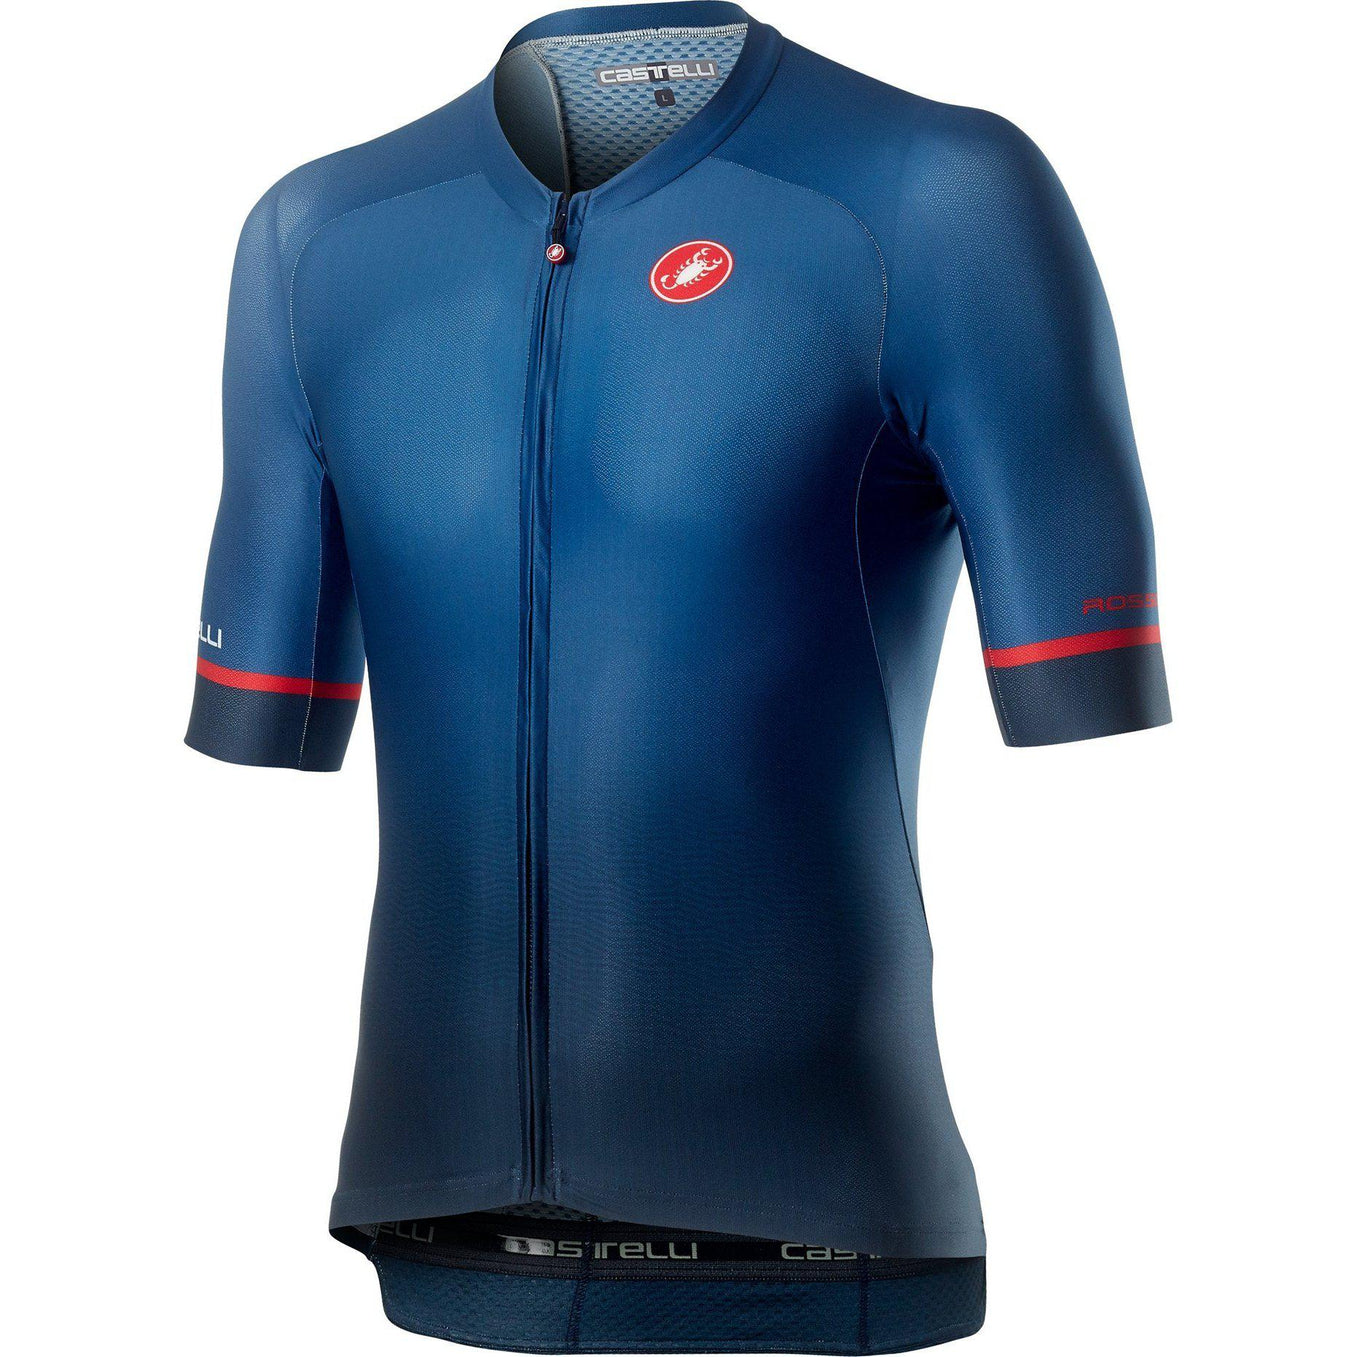 Castelli-Castelli Aero Race 6.0 Jersey-Dark Infinity Blue-XS-CS200110411-saddleback-elite-performance-cycling